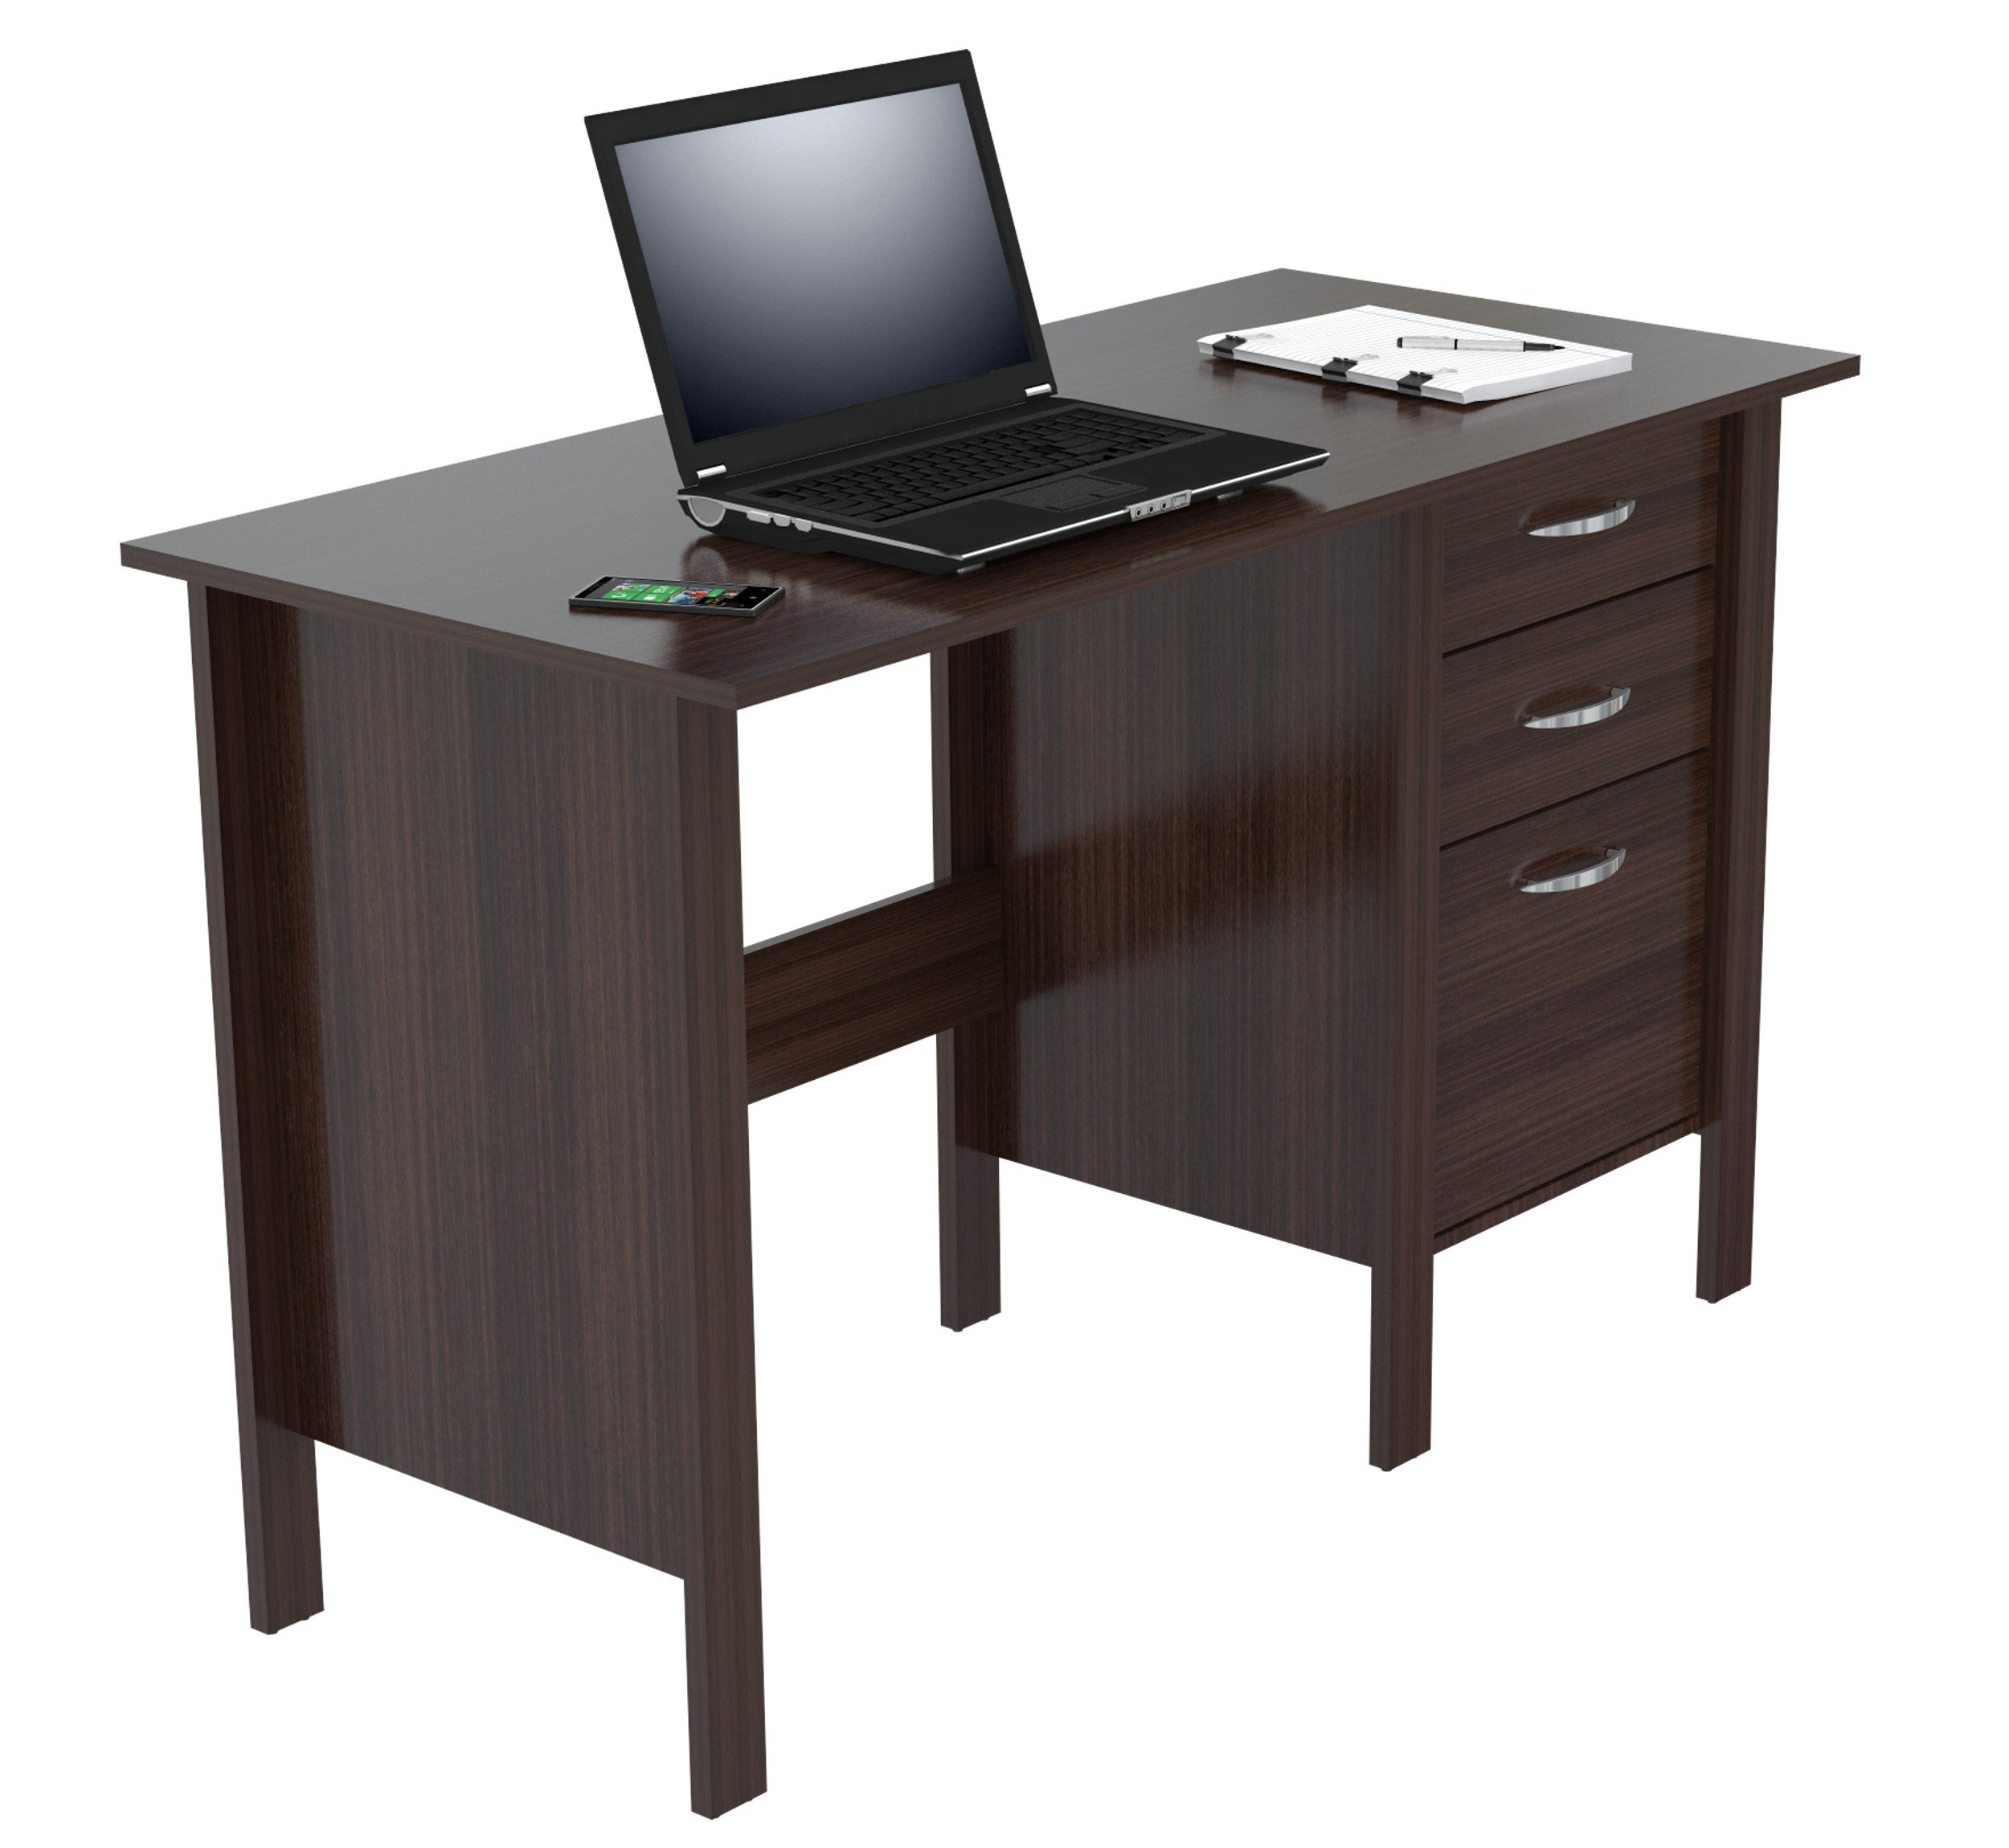 Inval America Writing Desk with 3 Drawers, Espresso Wengue